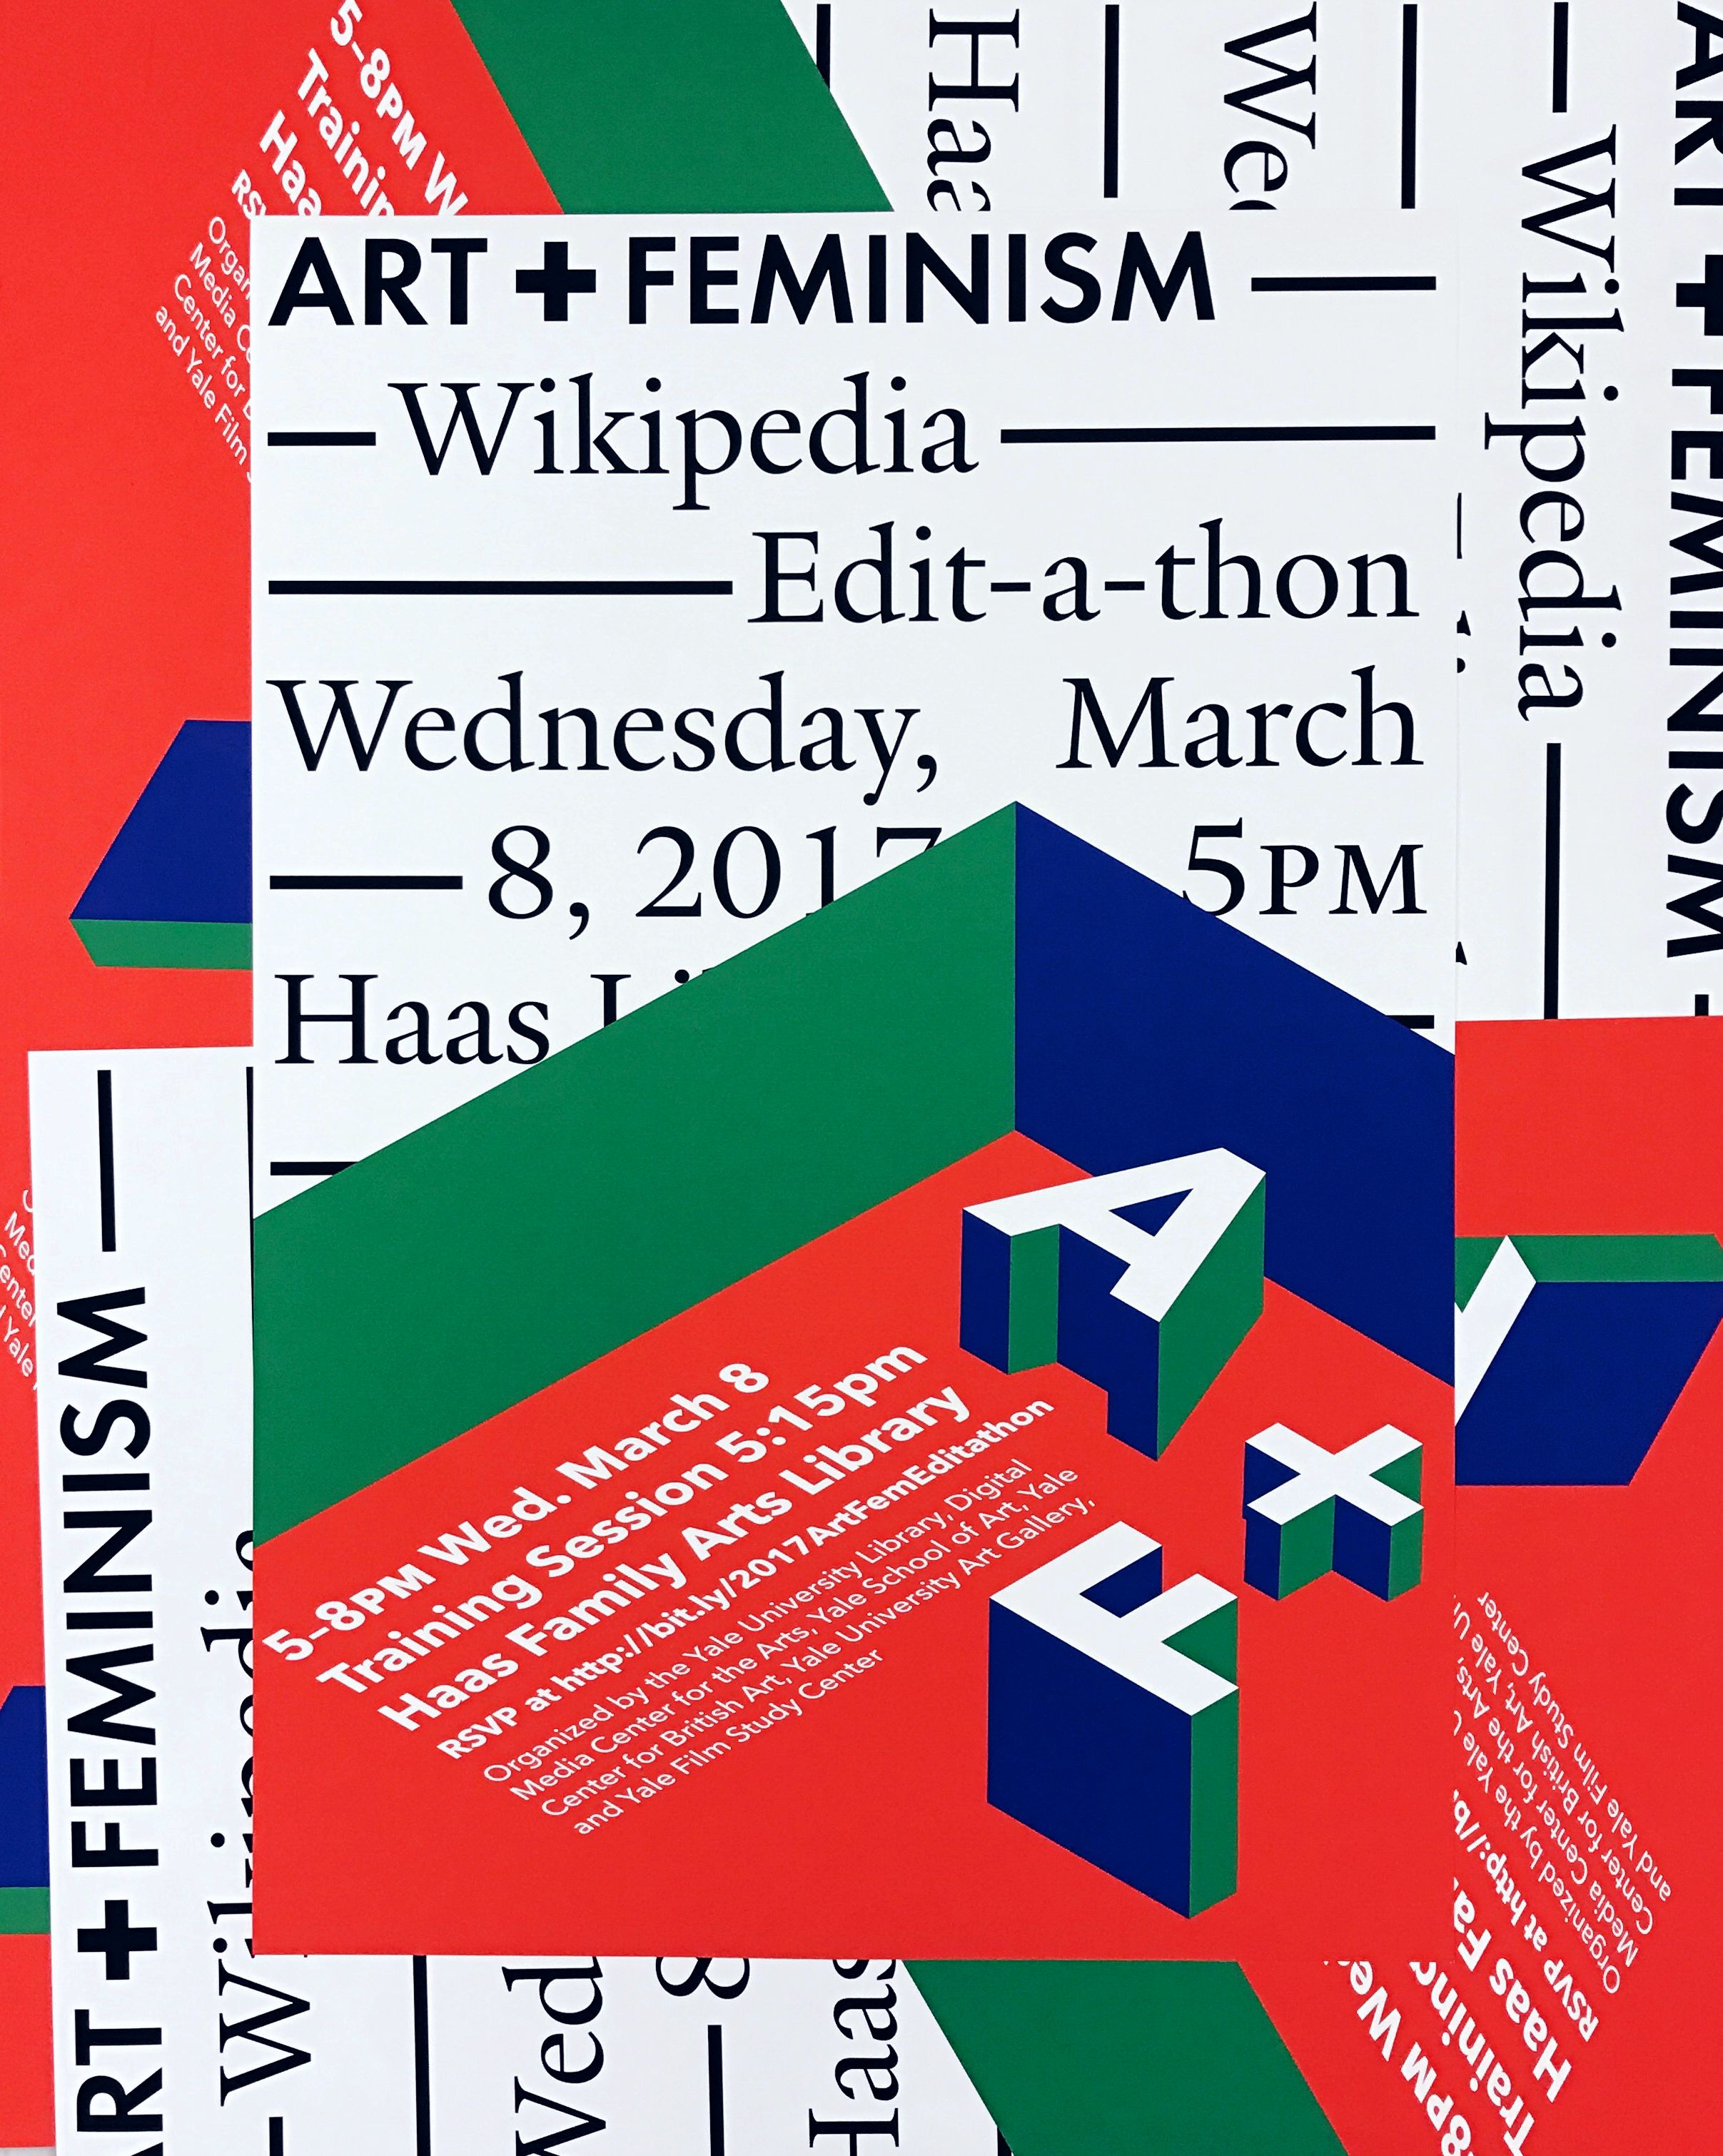 Posters for the Haas Family Arts Library Art+Feminism Wikipedia Edit-a-thon, Yale University